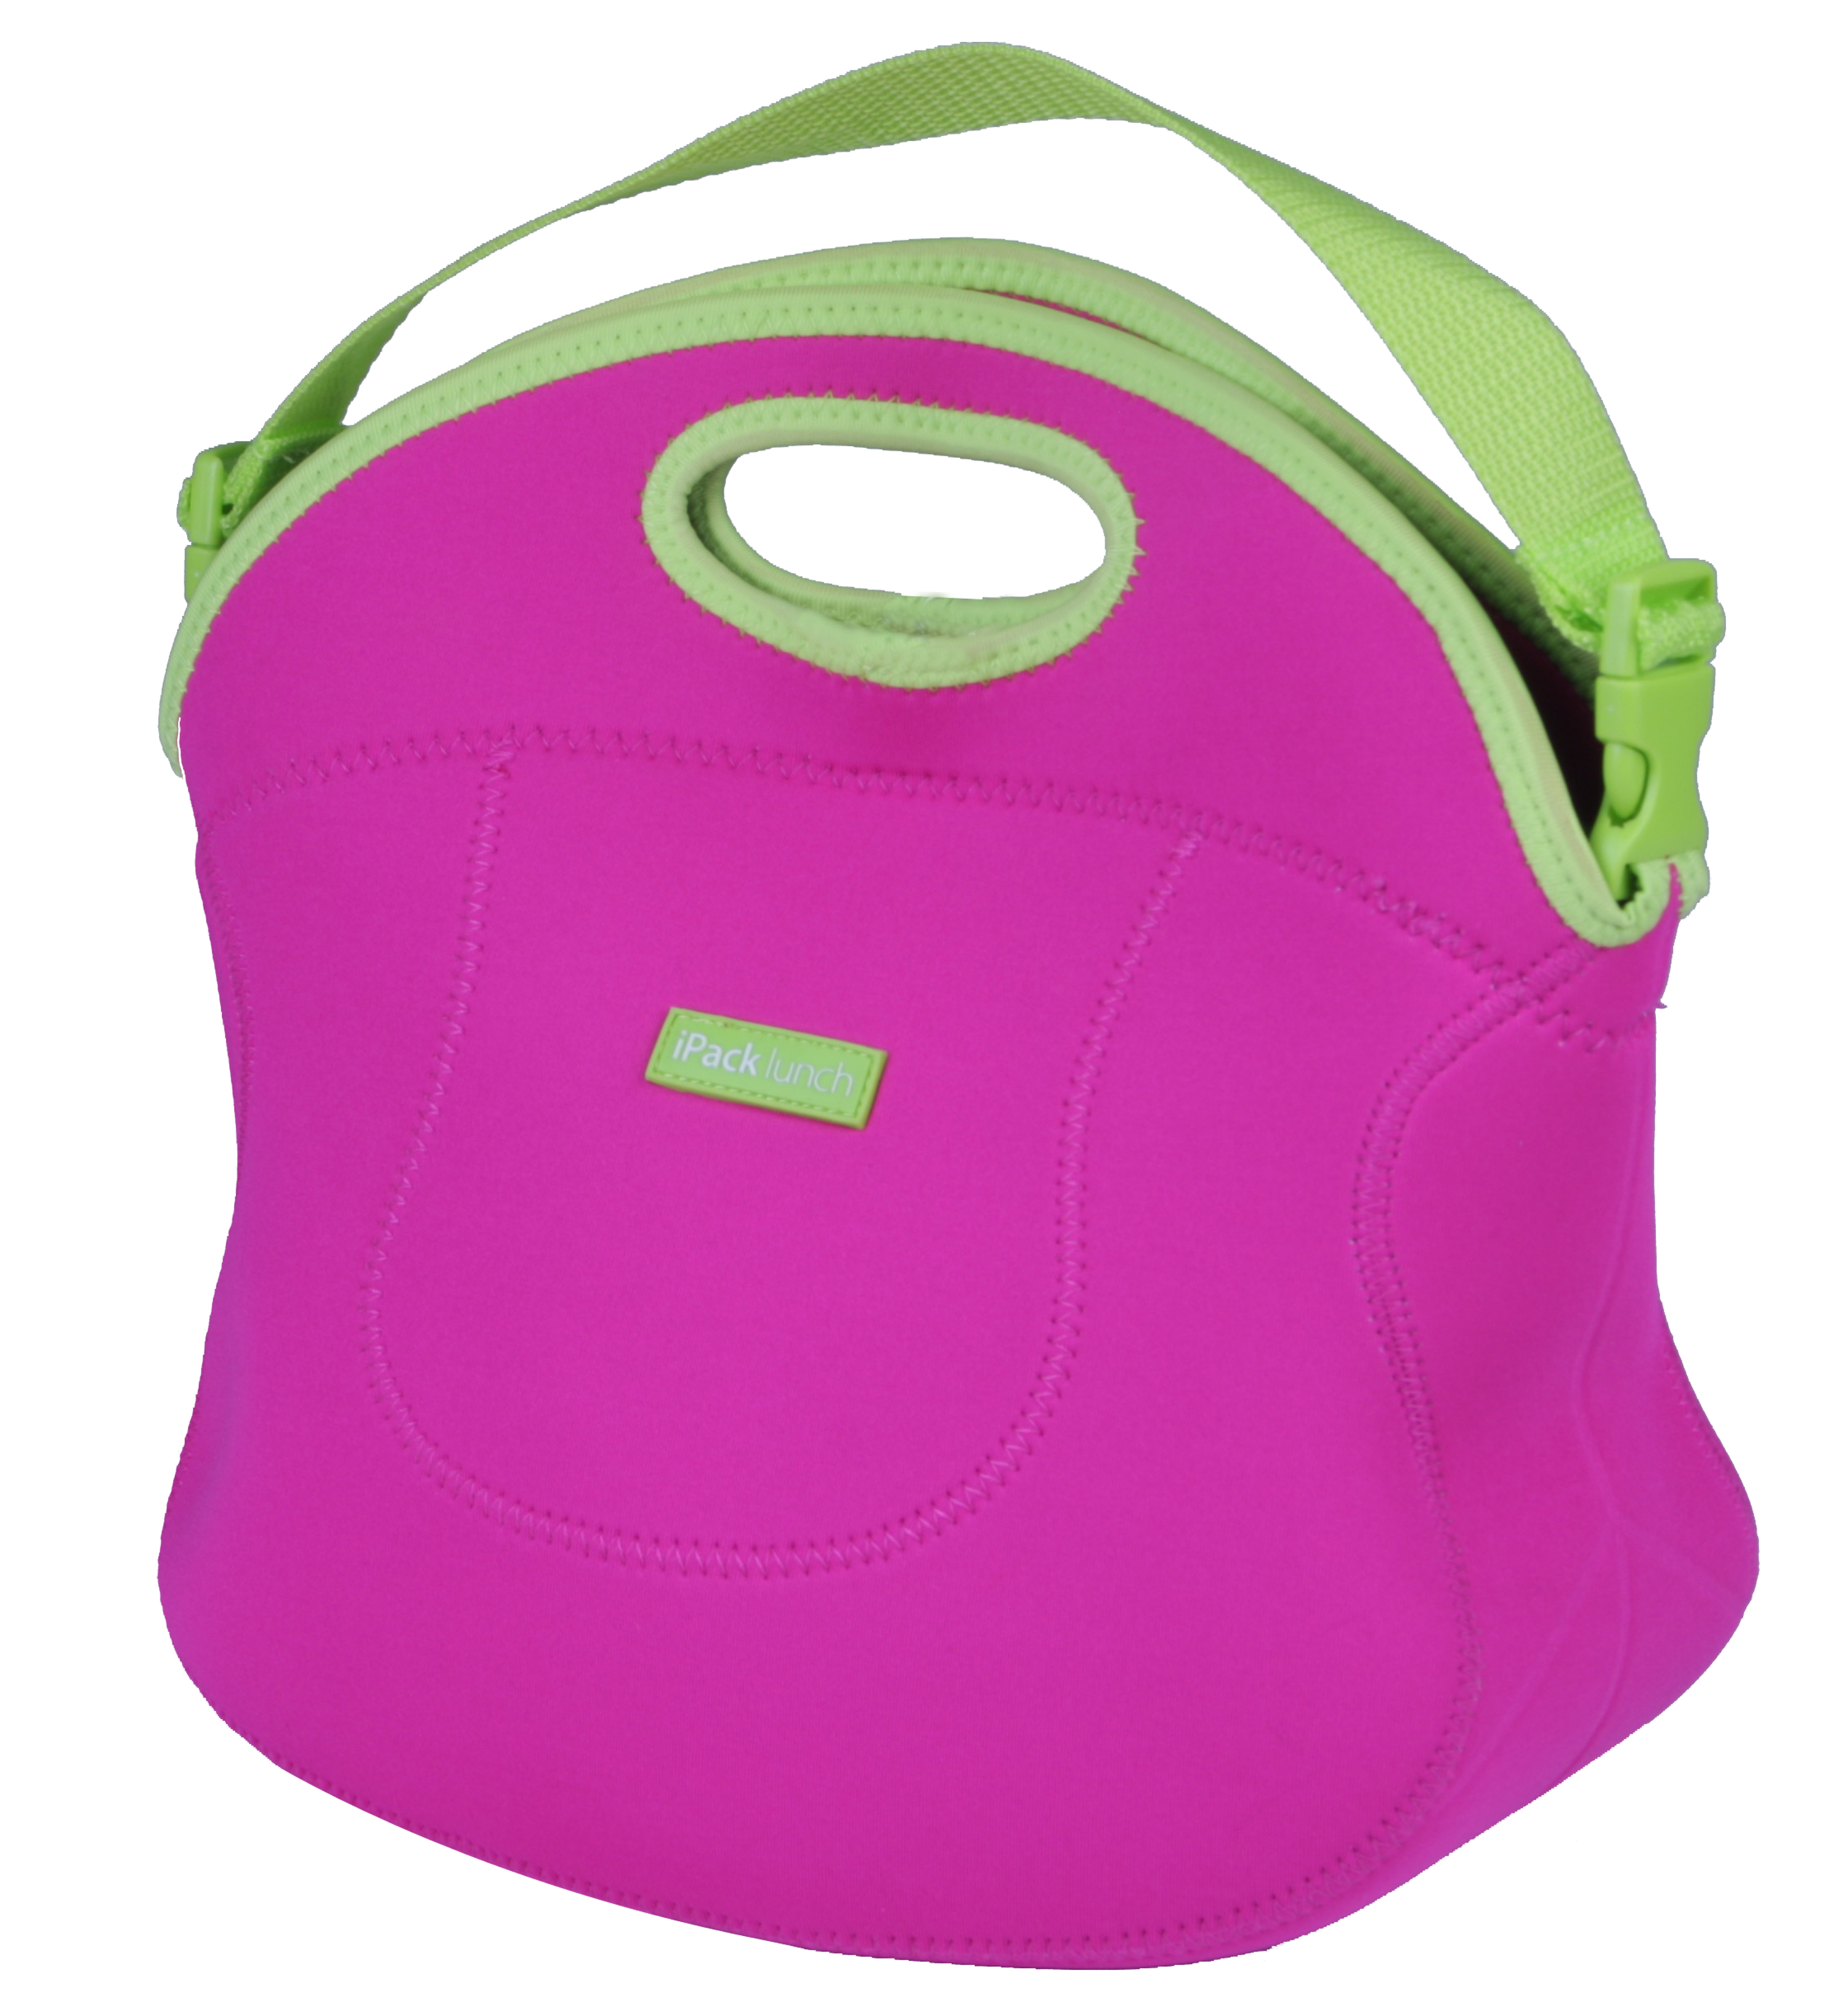 iPack Lunch Kit Neon Pink